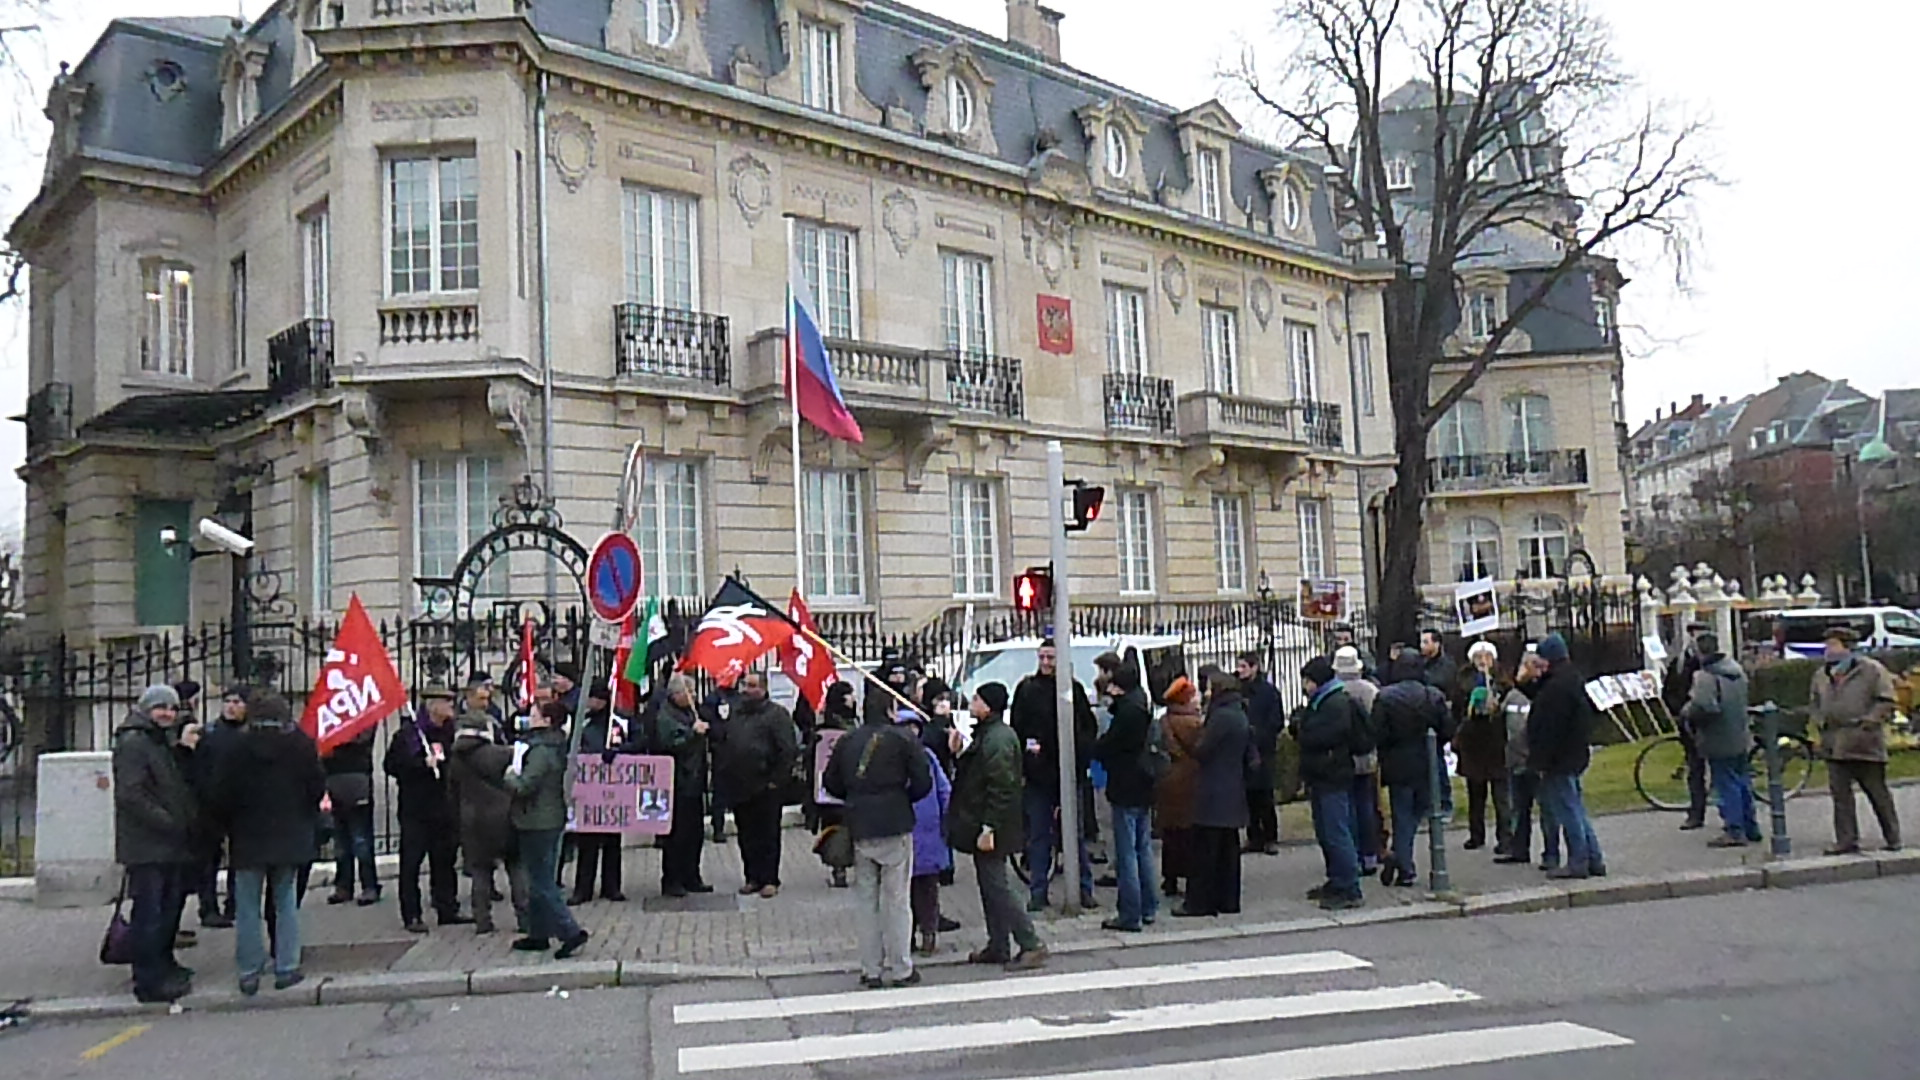 manif consulat russe strasbourg feuille2chouphoto